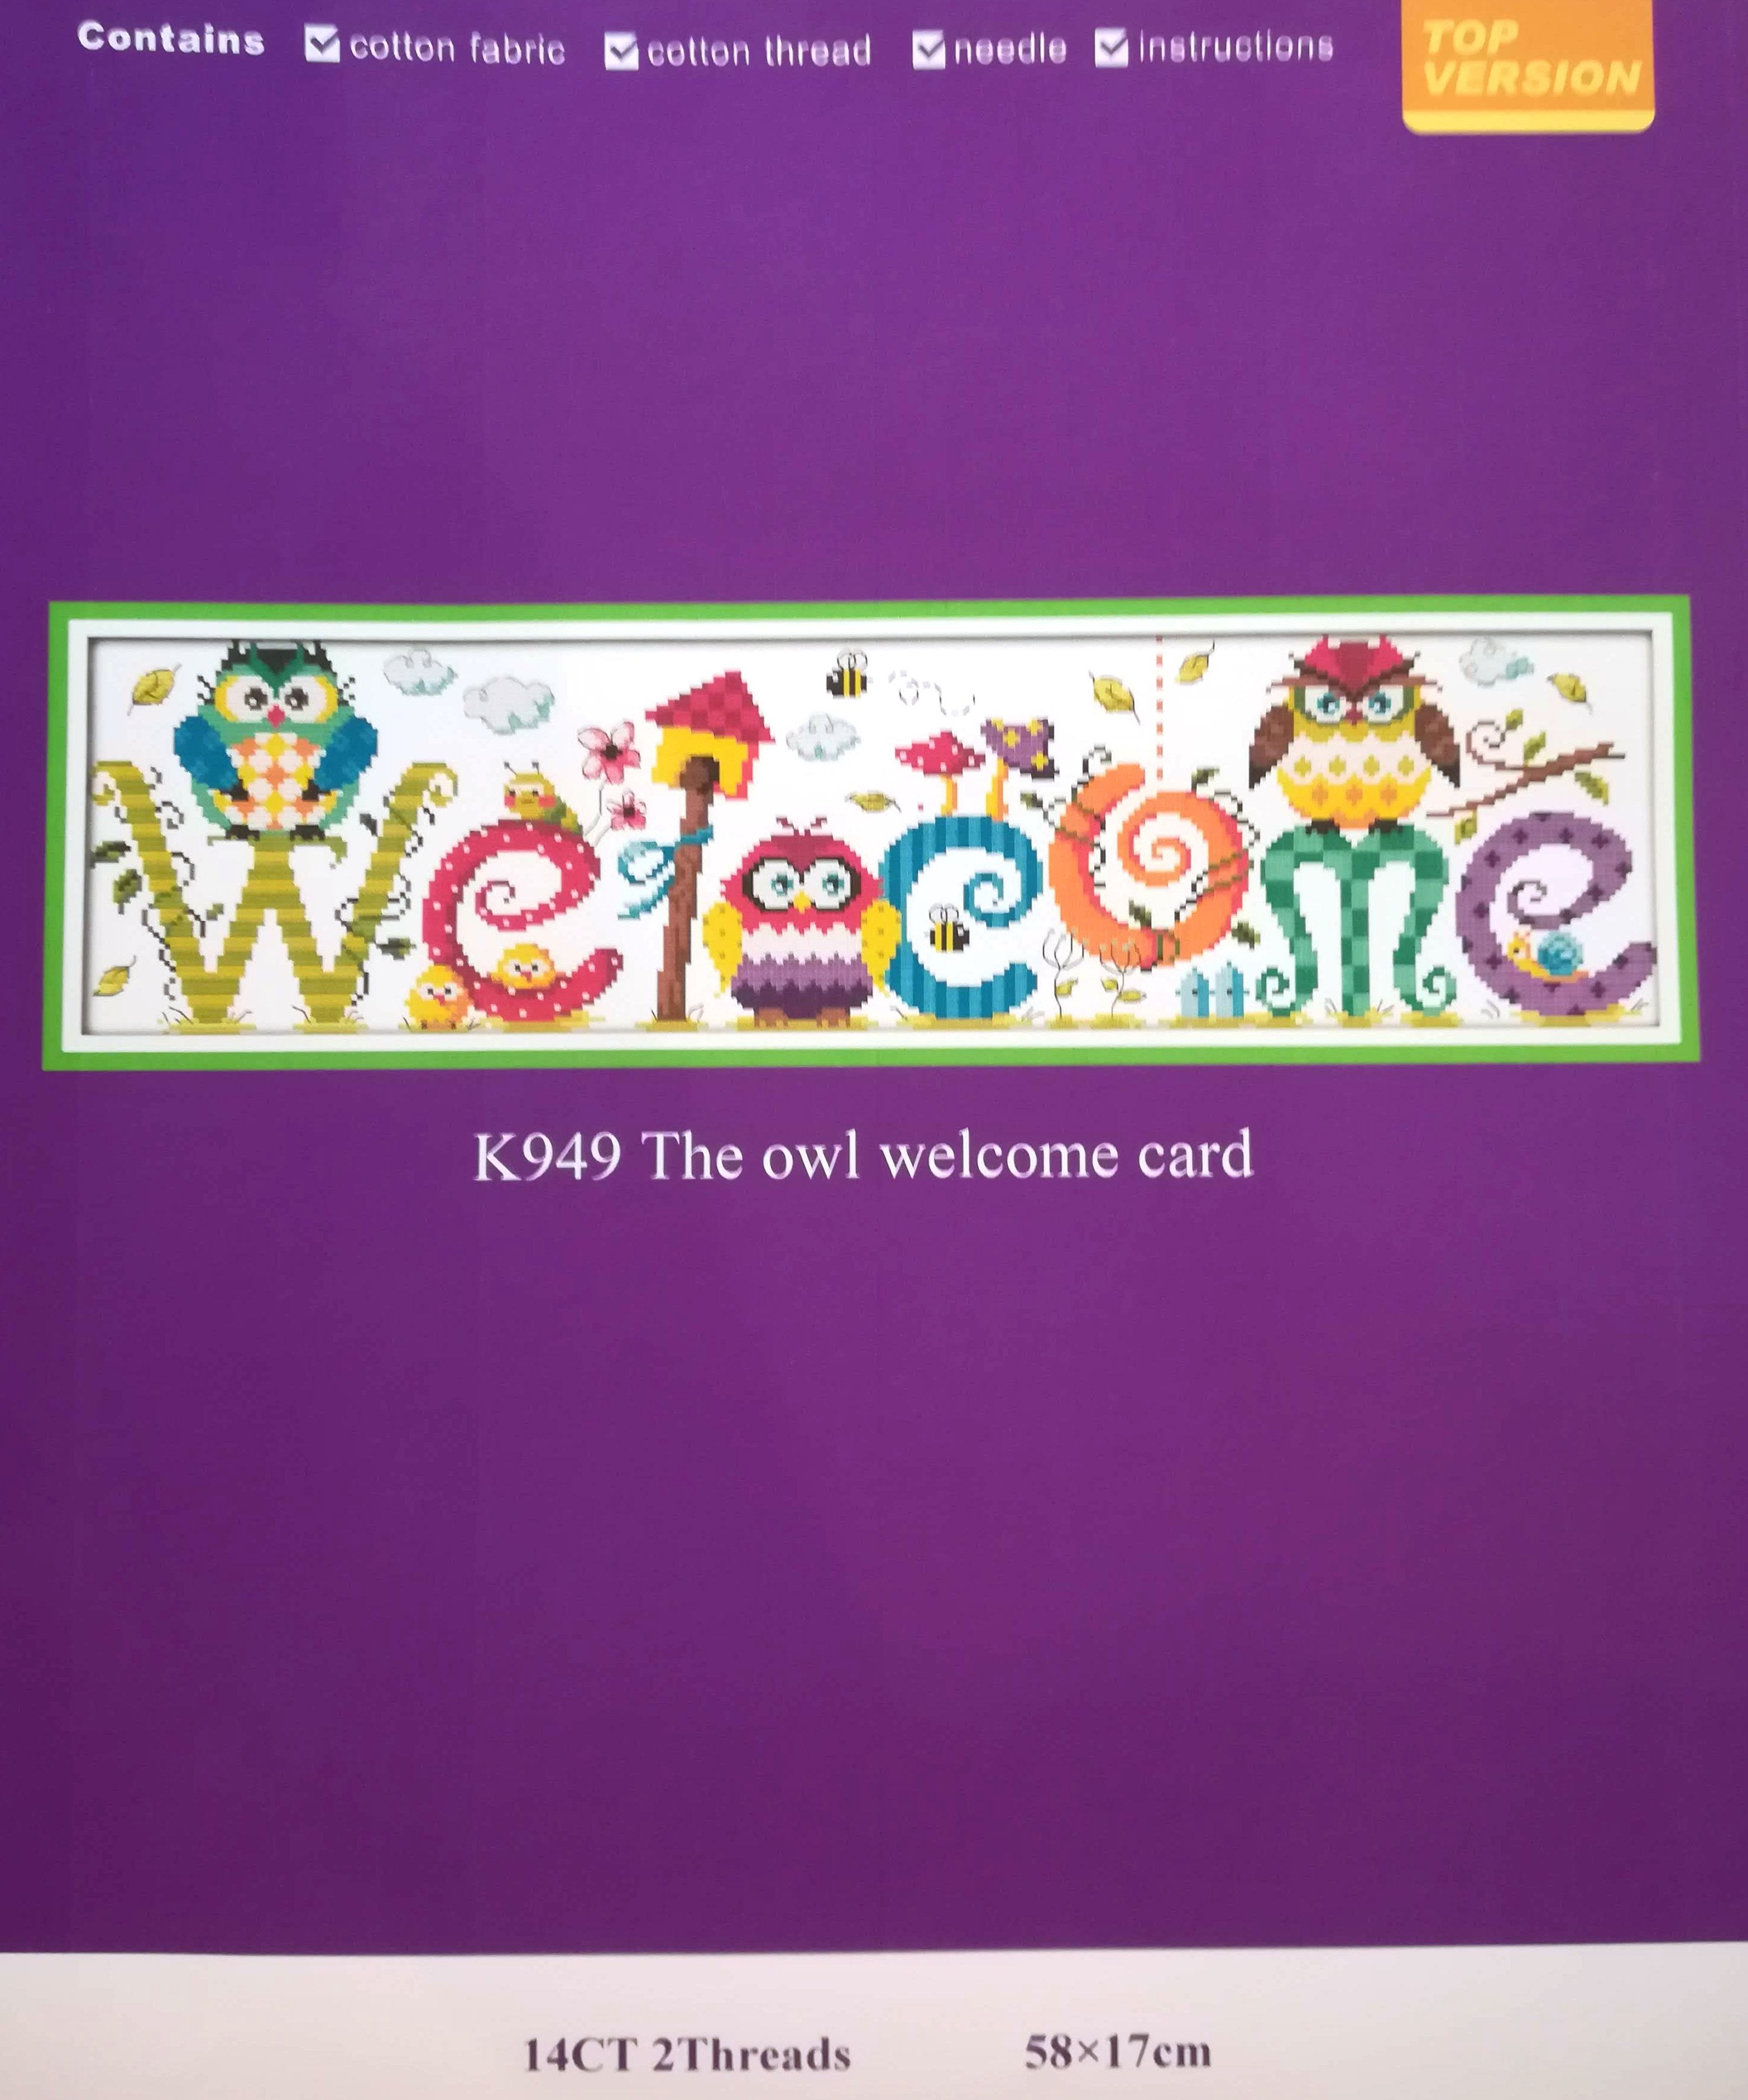 The Owl welcome card